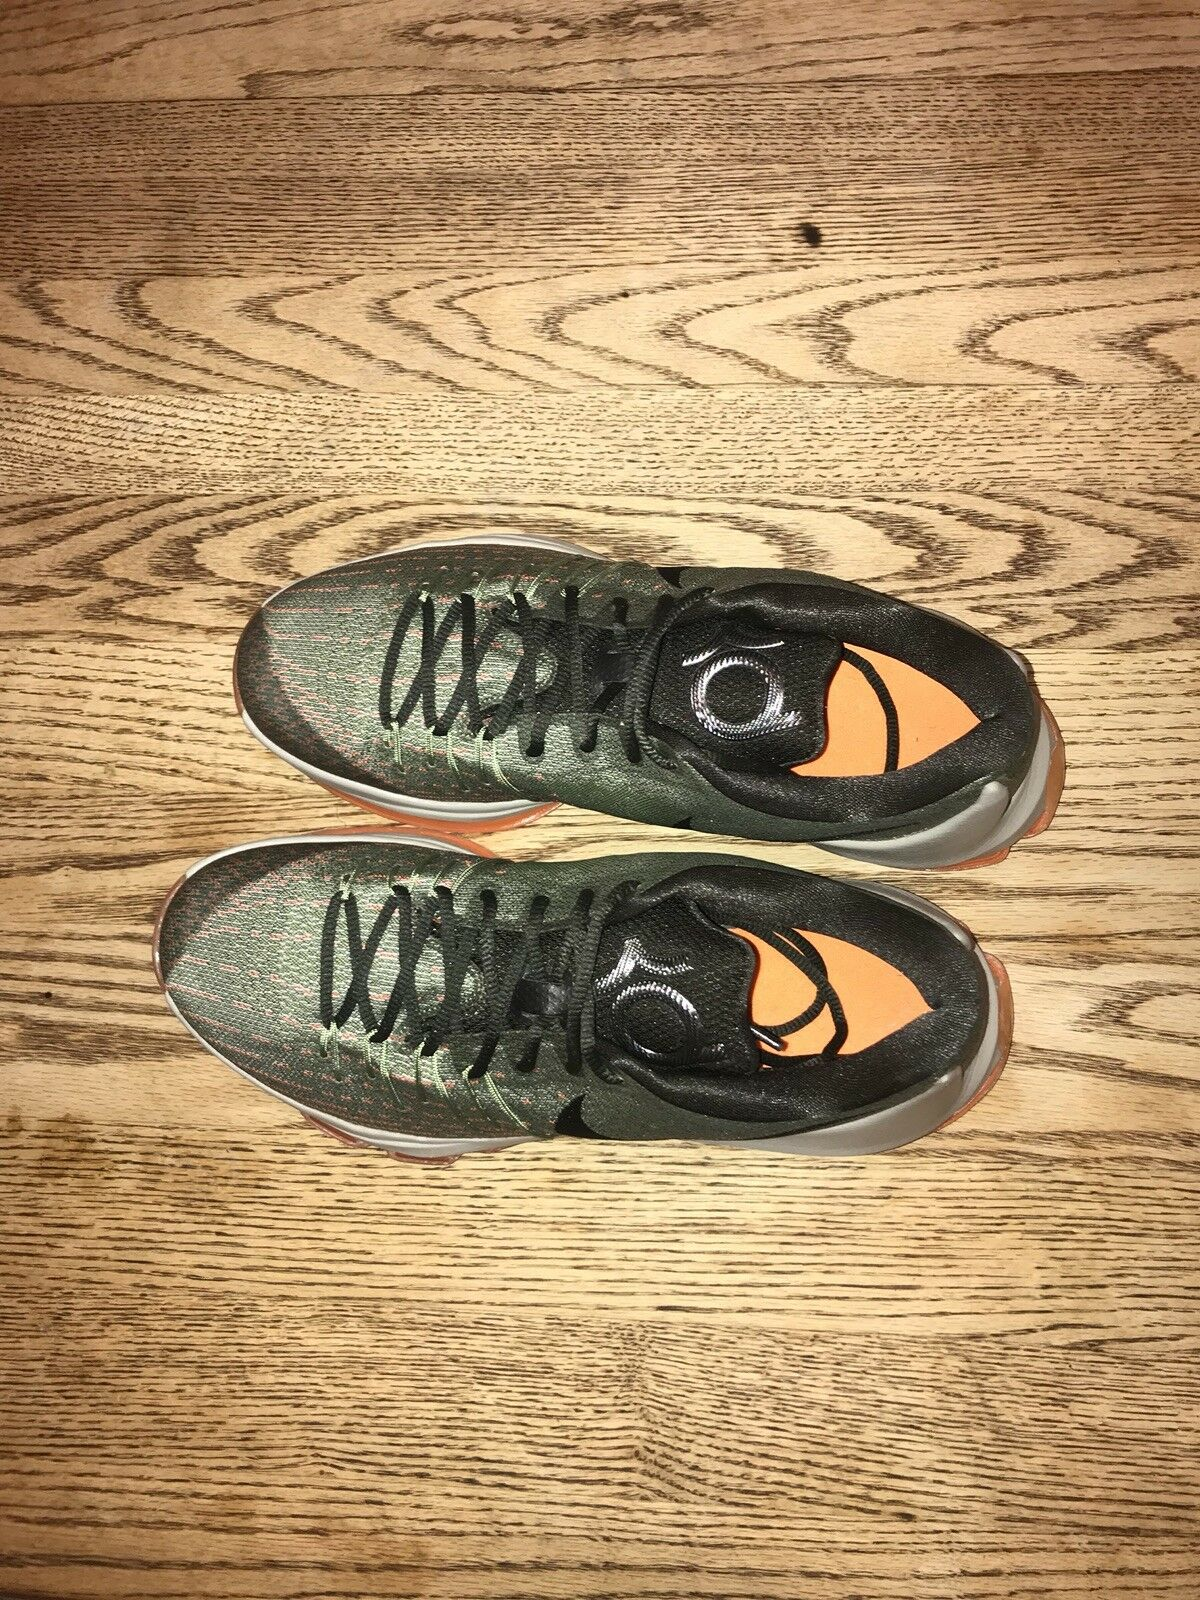 kd 8 Phillippines Size 9.5  Cheap and fashionable